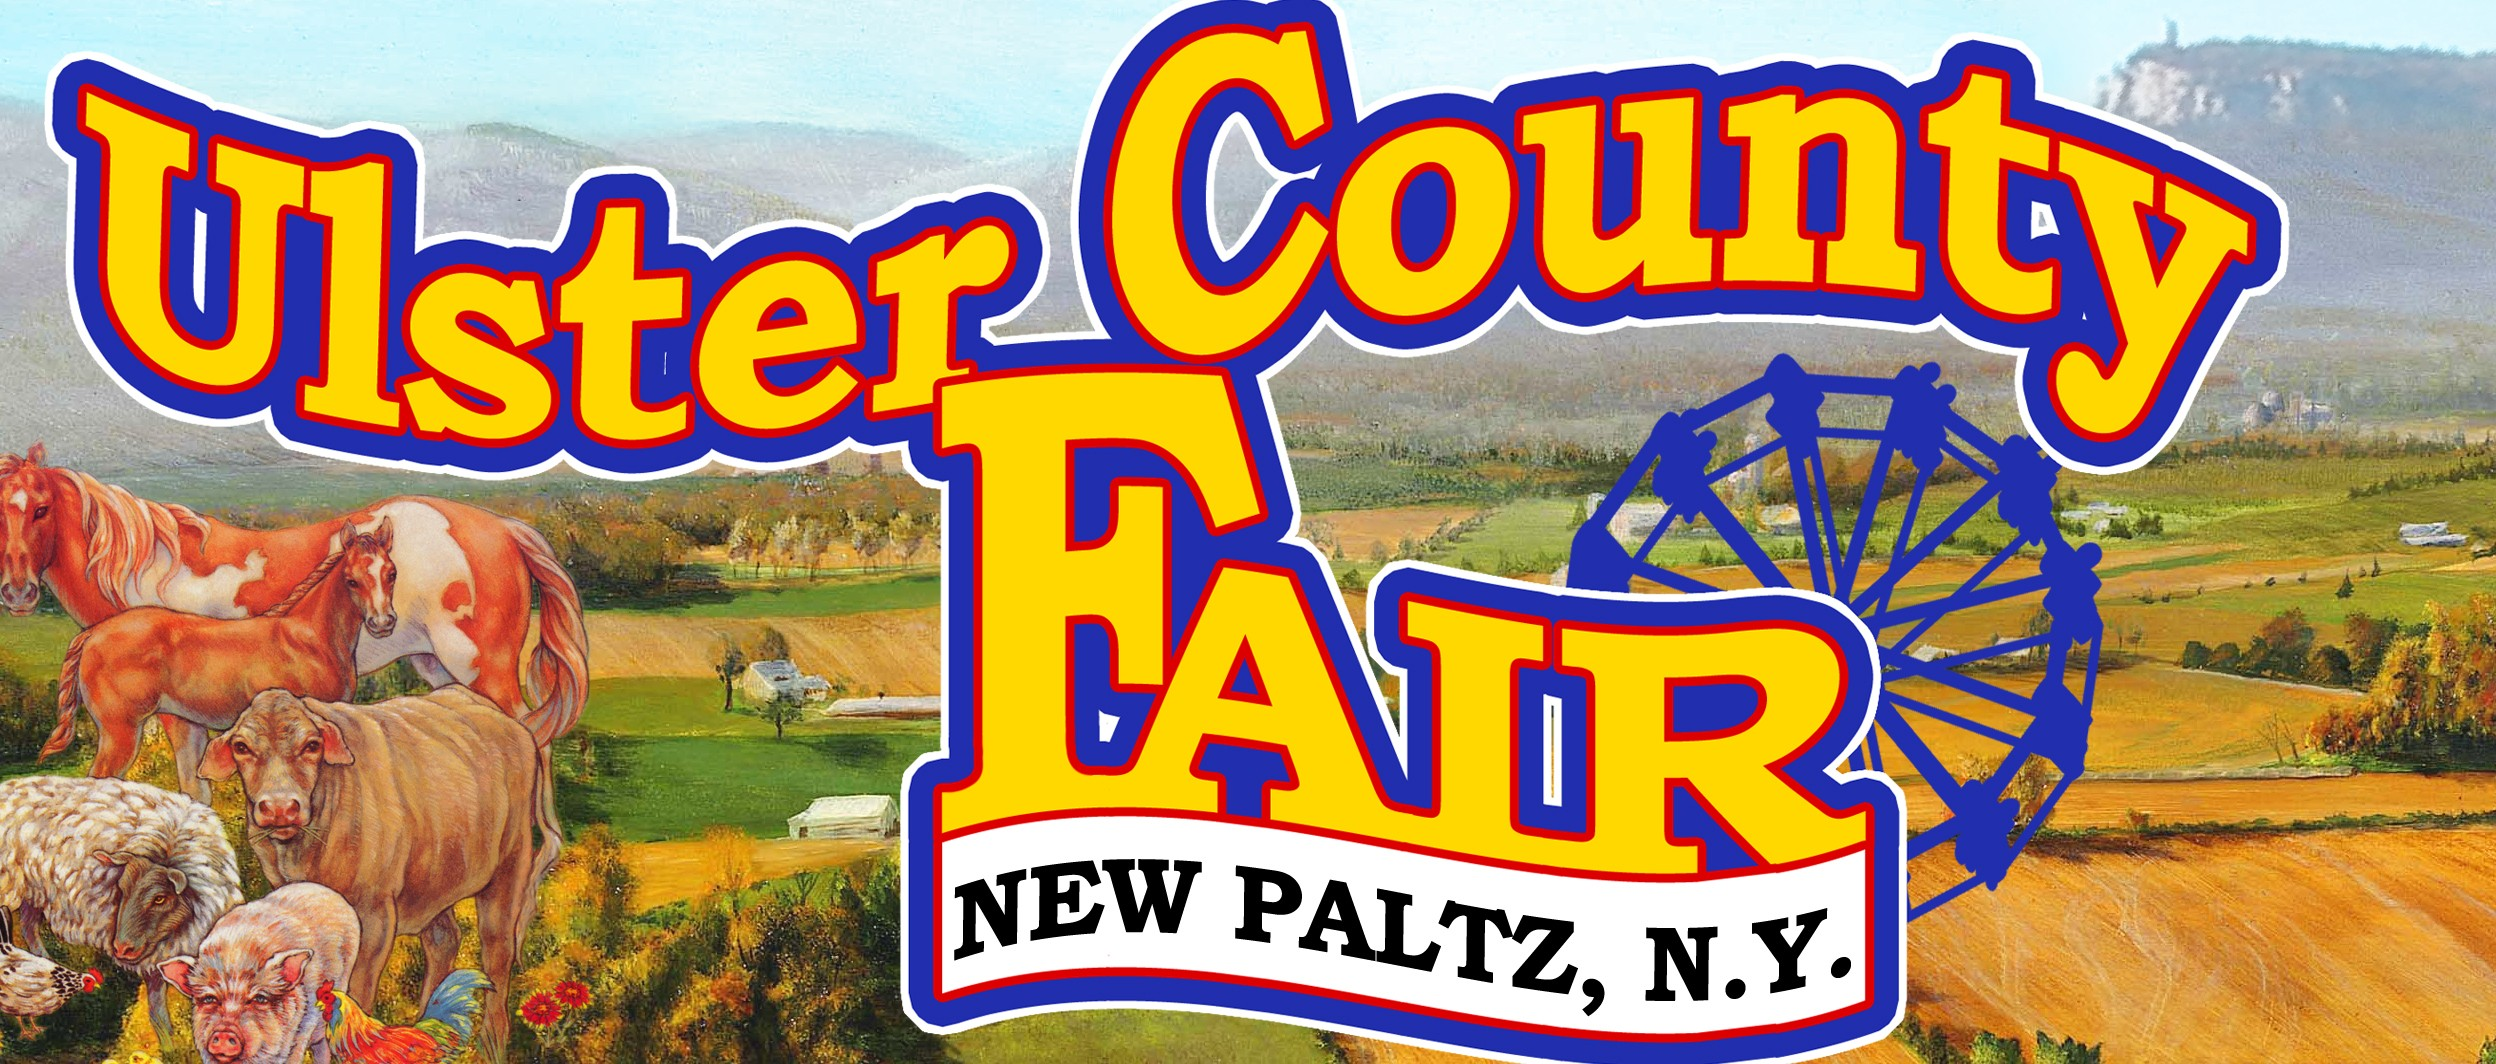 Ulster County Fair at Ulster County Fairgrounds